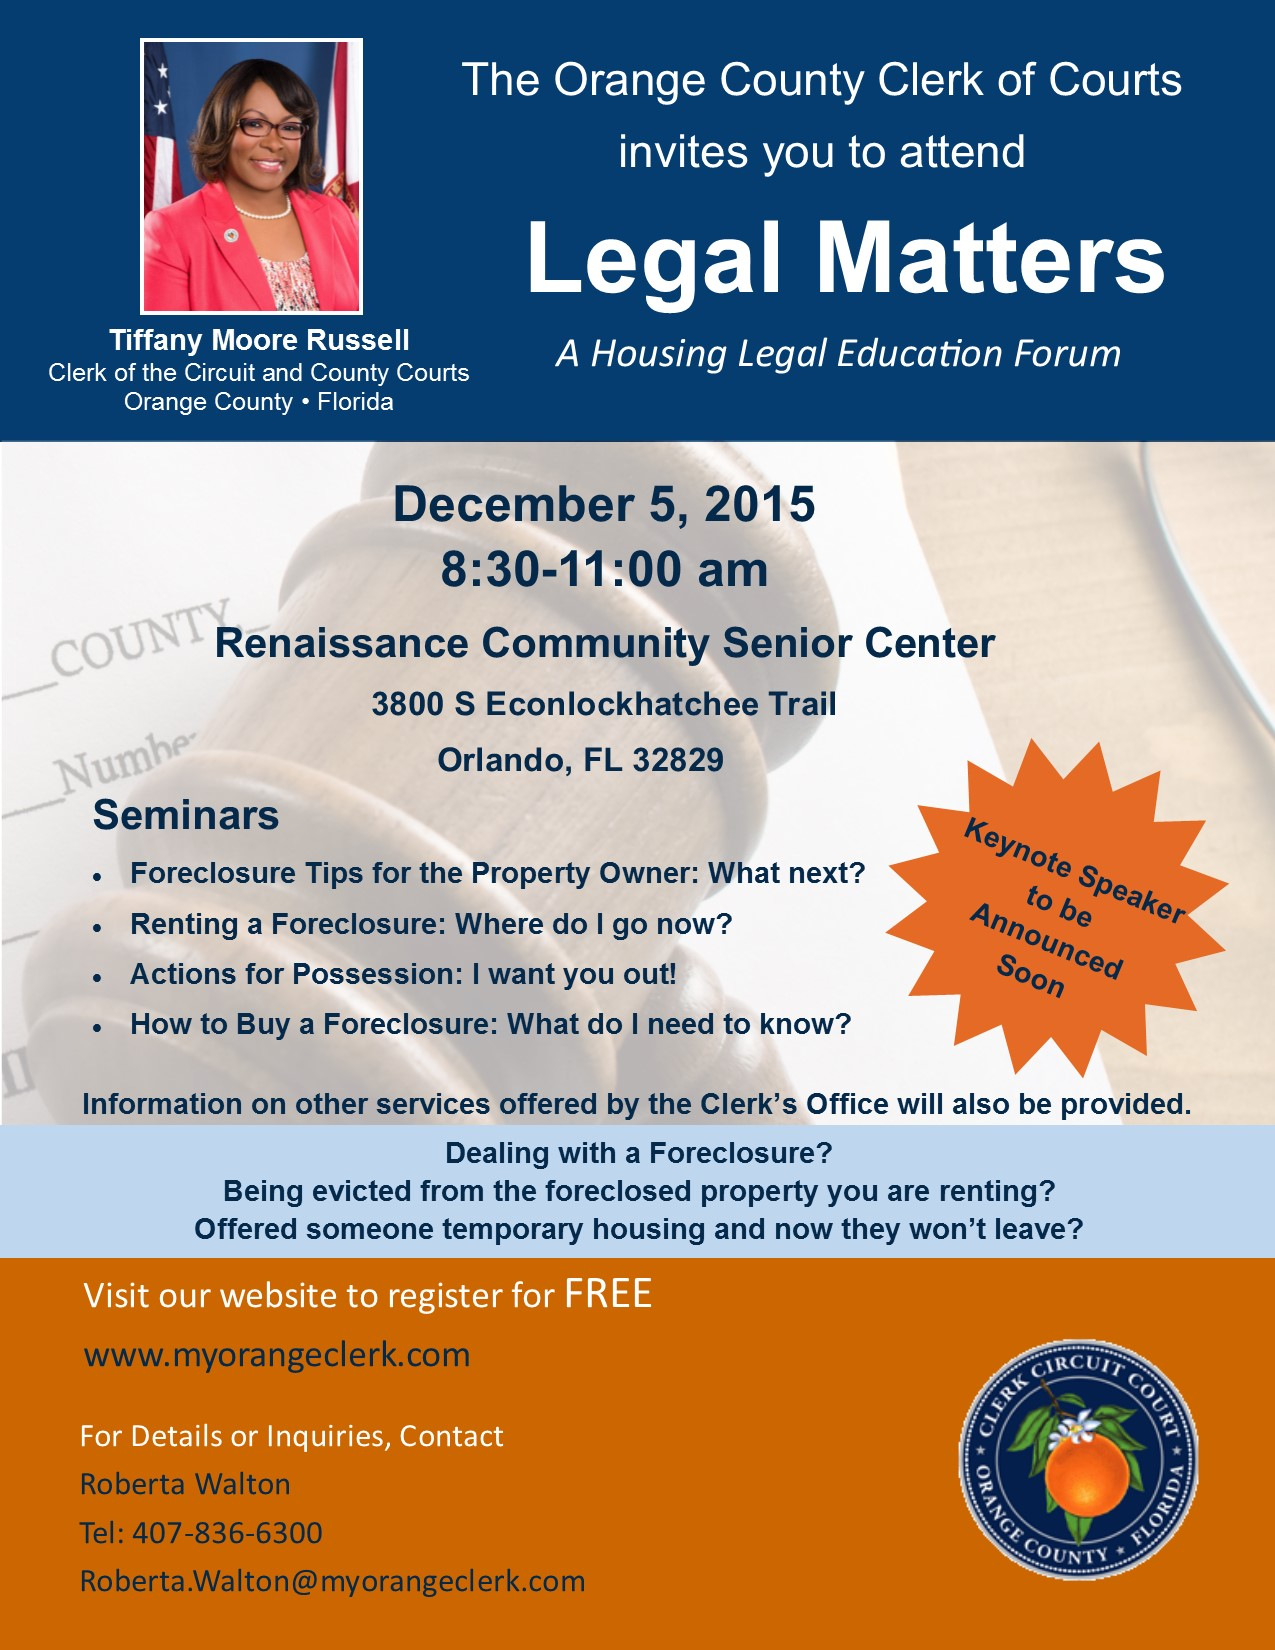 Orange County Clerk of Courts Housing Legal Education Forum